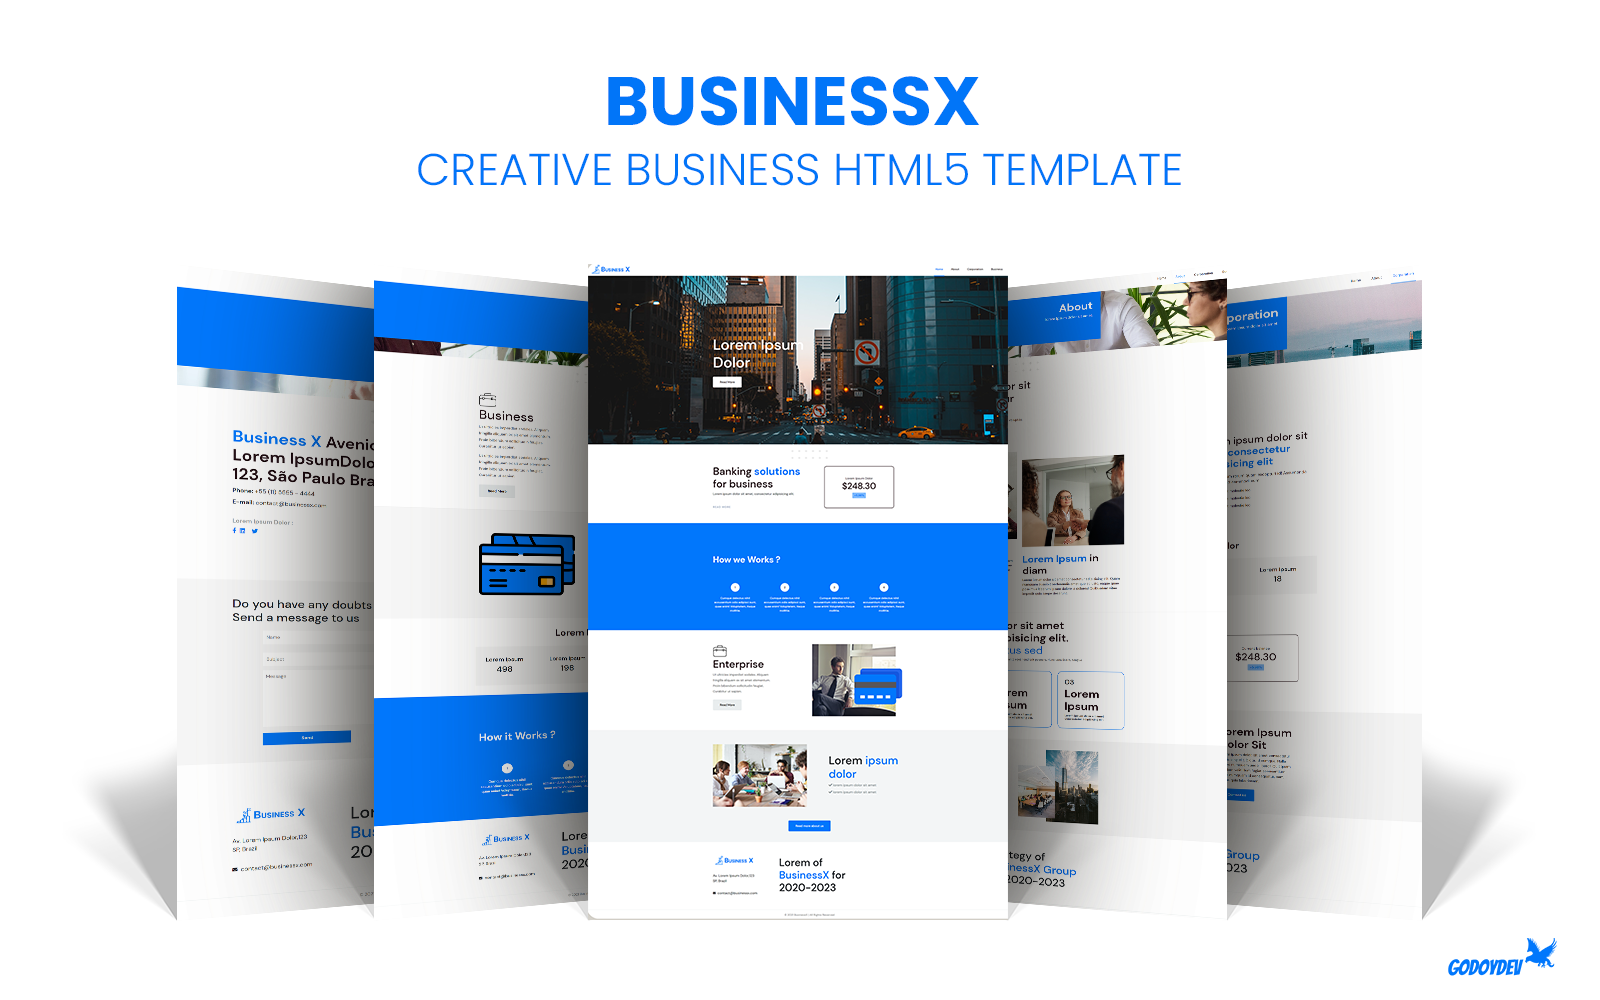 BusinessX - Creative Business HTML5 Template